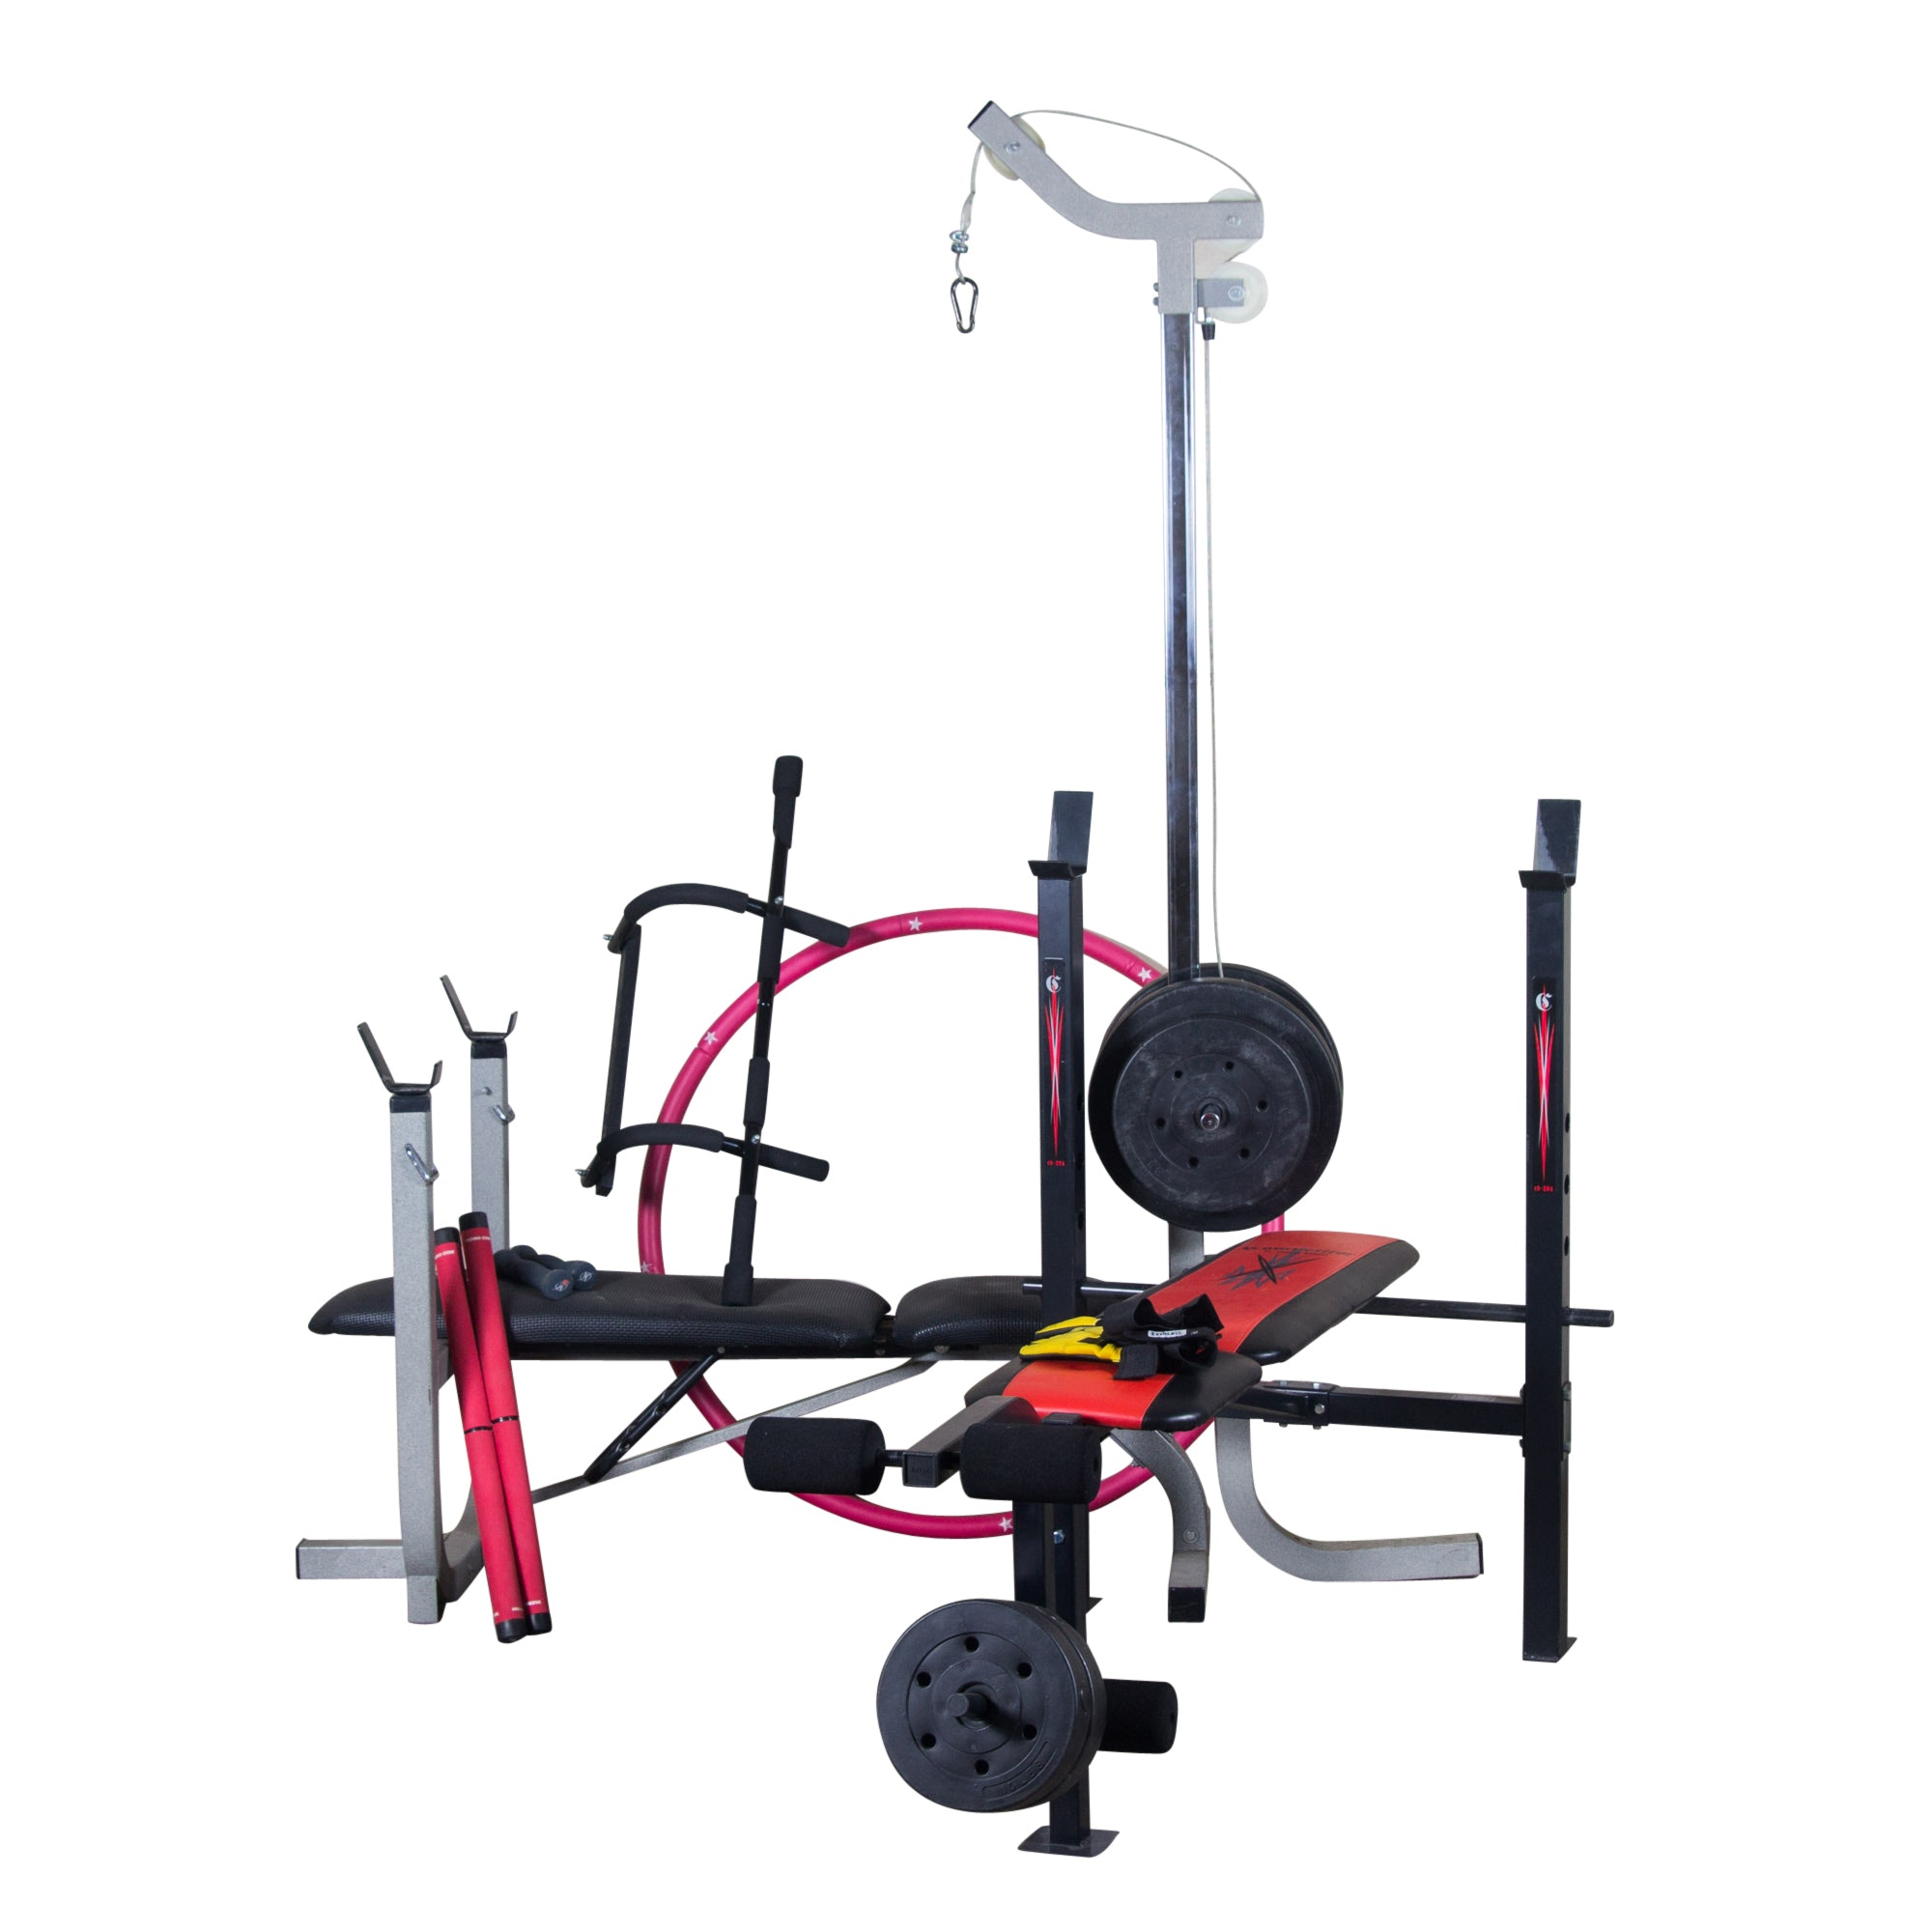 Large Grouping of Workout Equipment